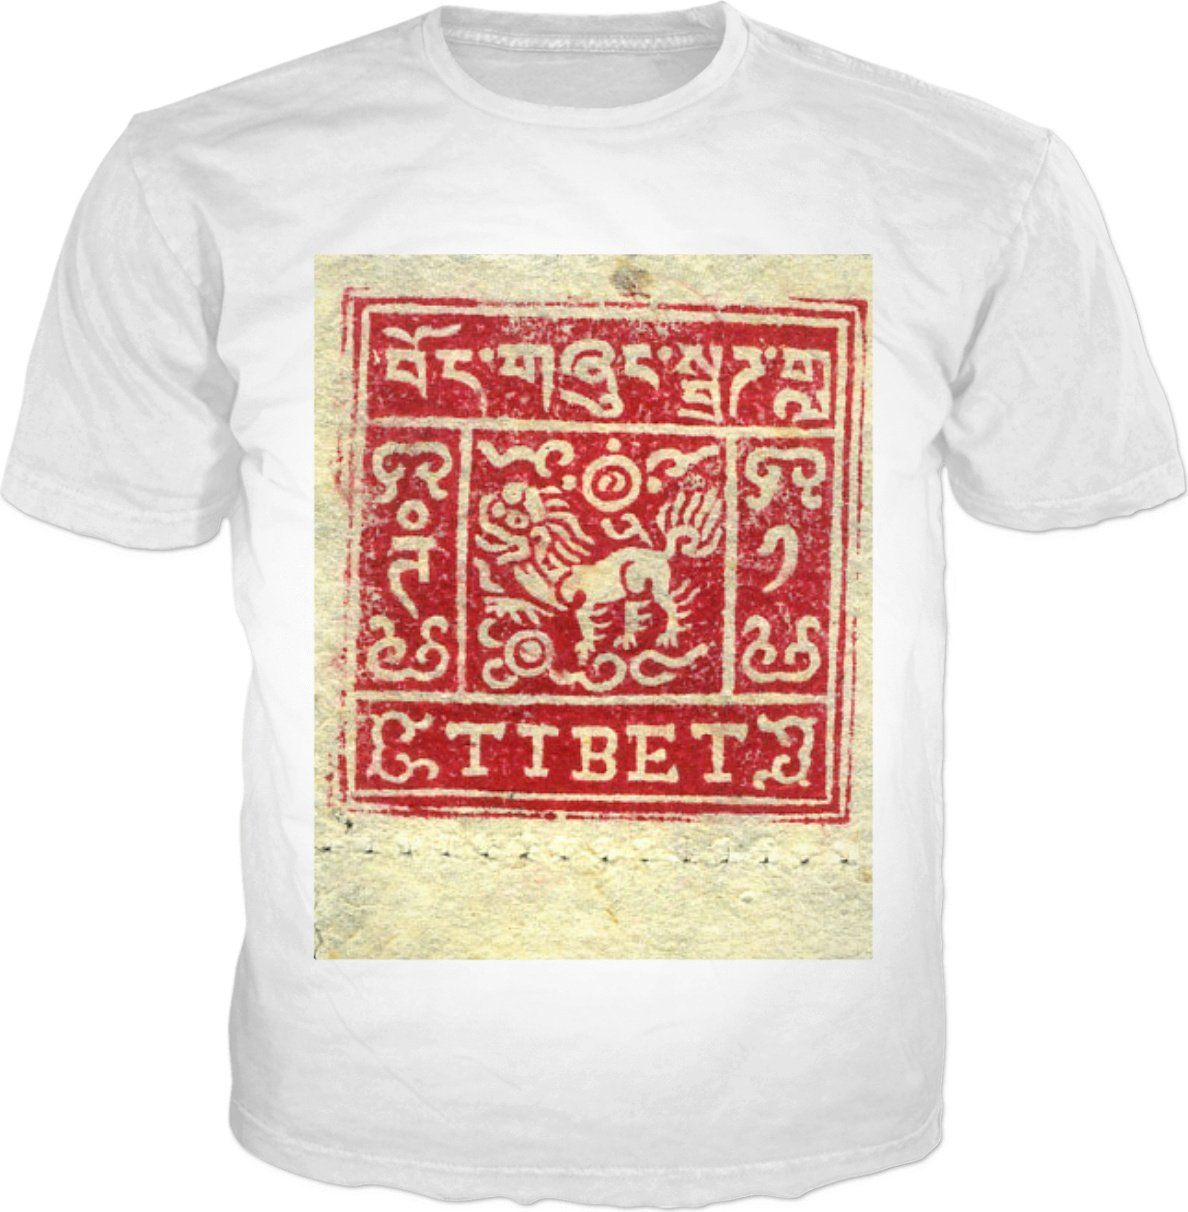 products/dw-t-shirts-tibet-1.jpg